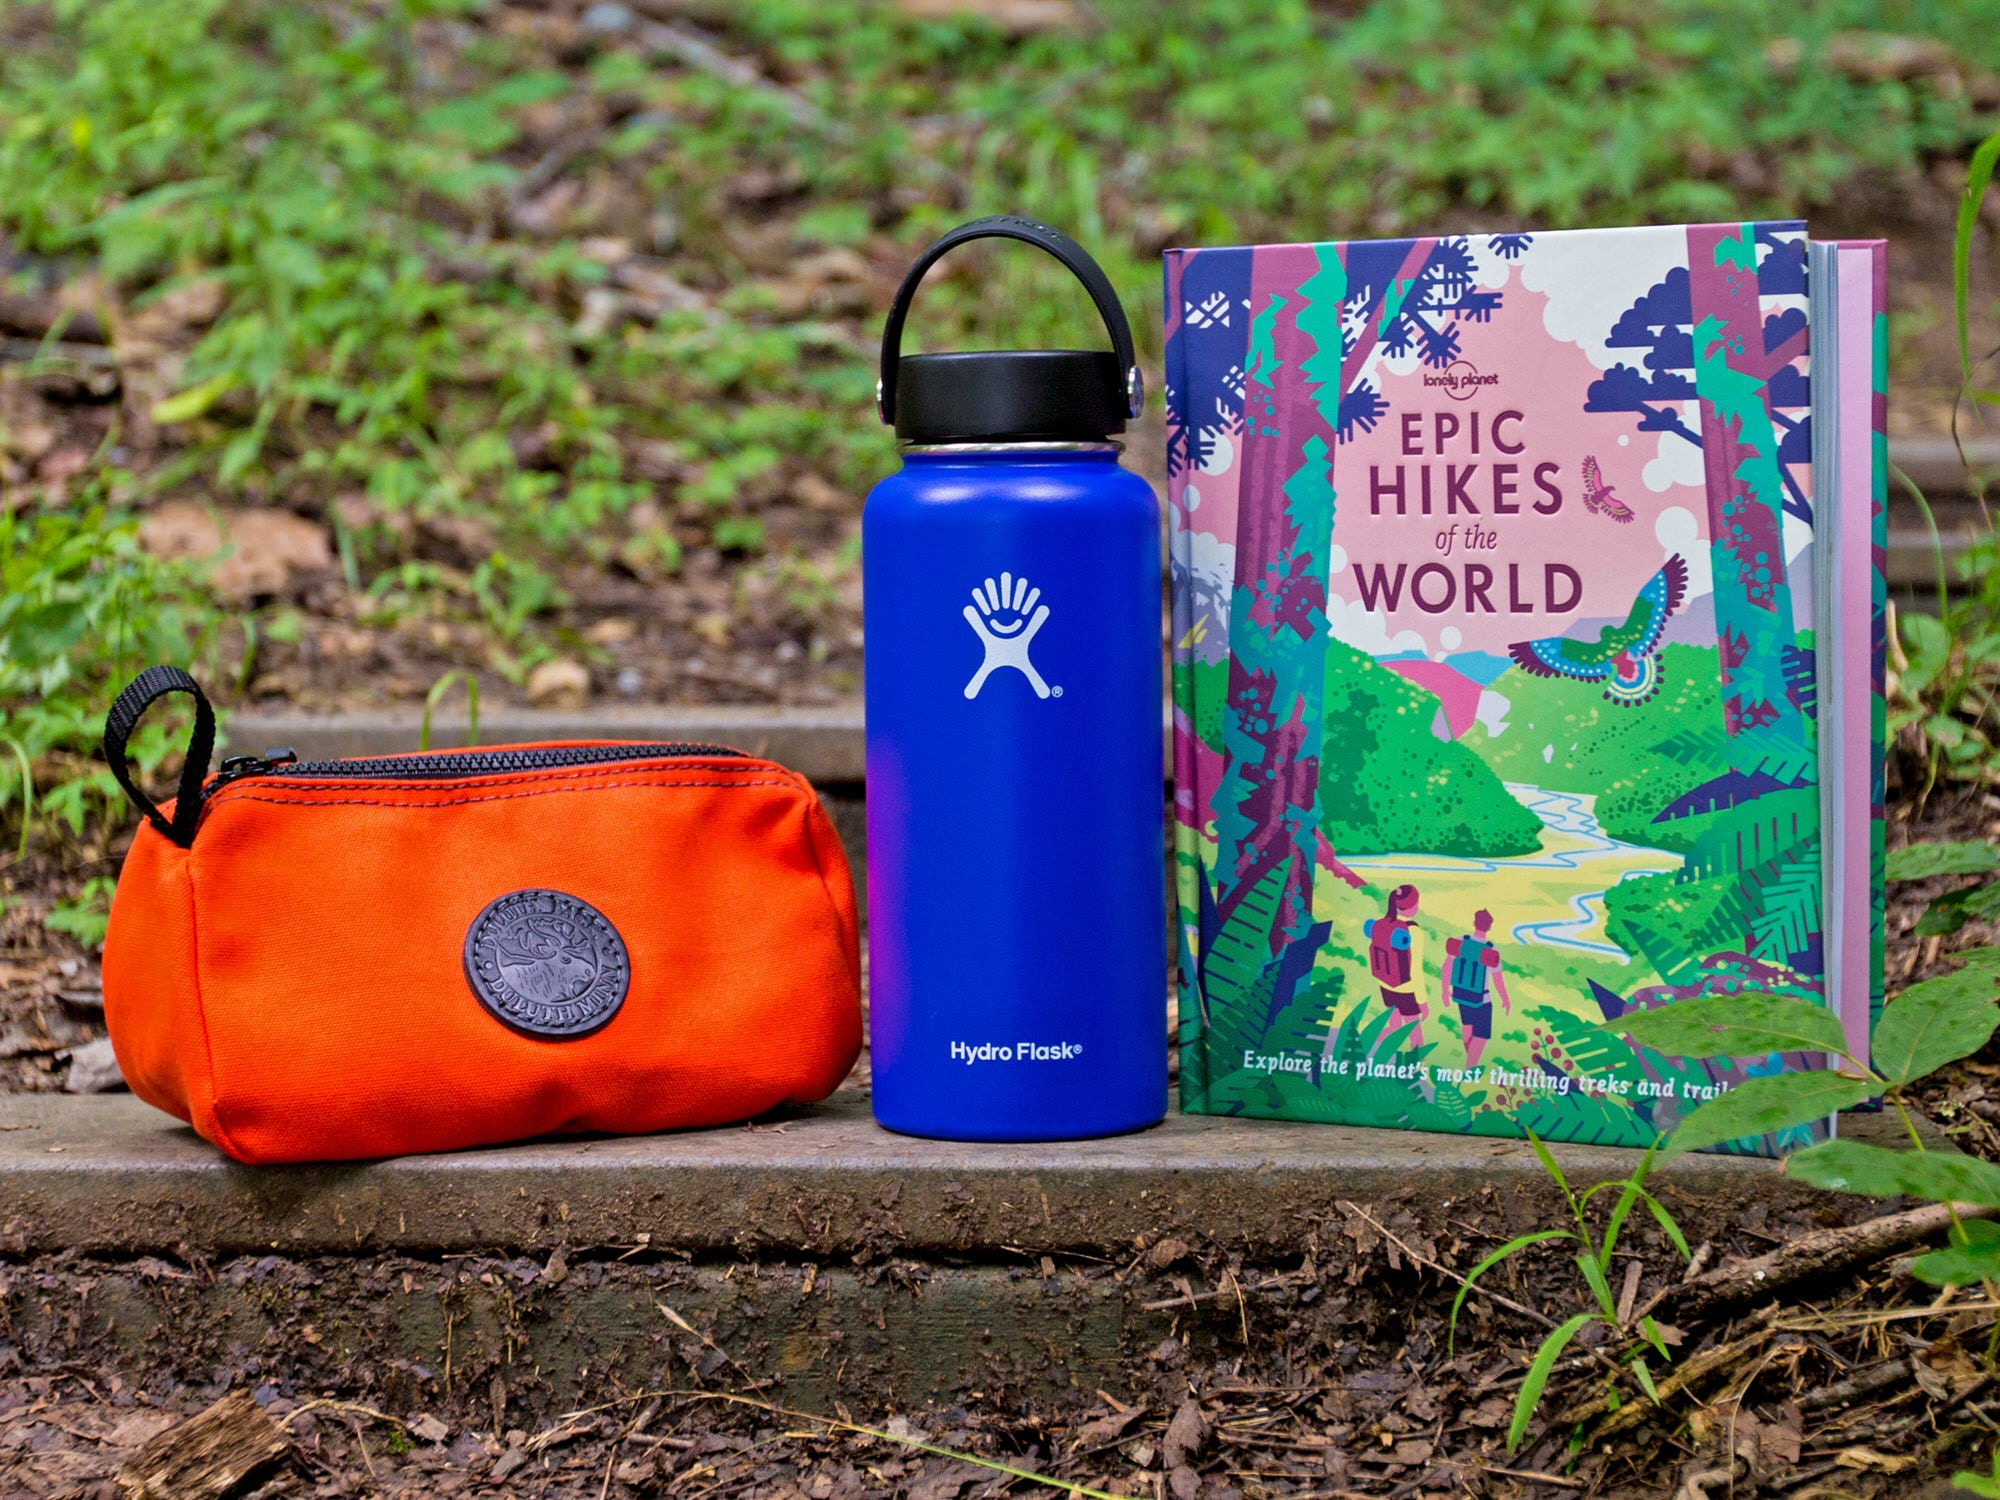 Third prize: a Duluth Grab-N-Go bag, Hydro Flask and Lonely Planet's Epic Hikes of the World